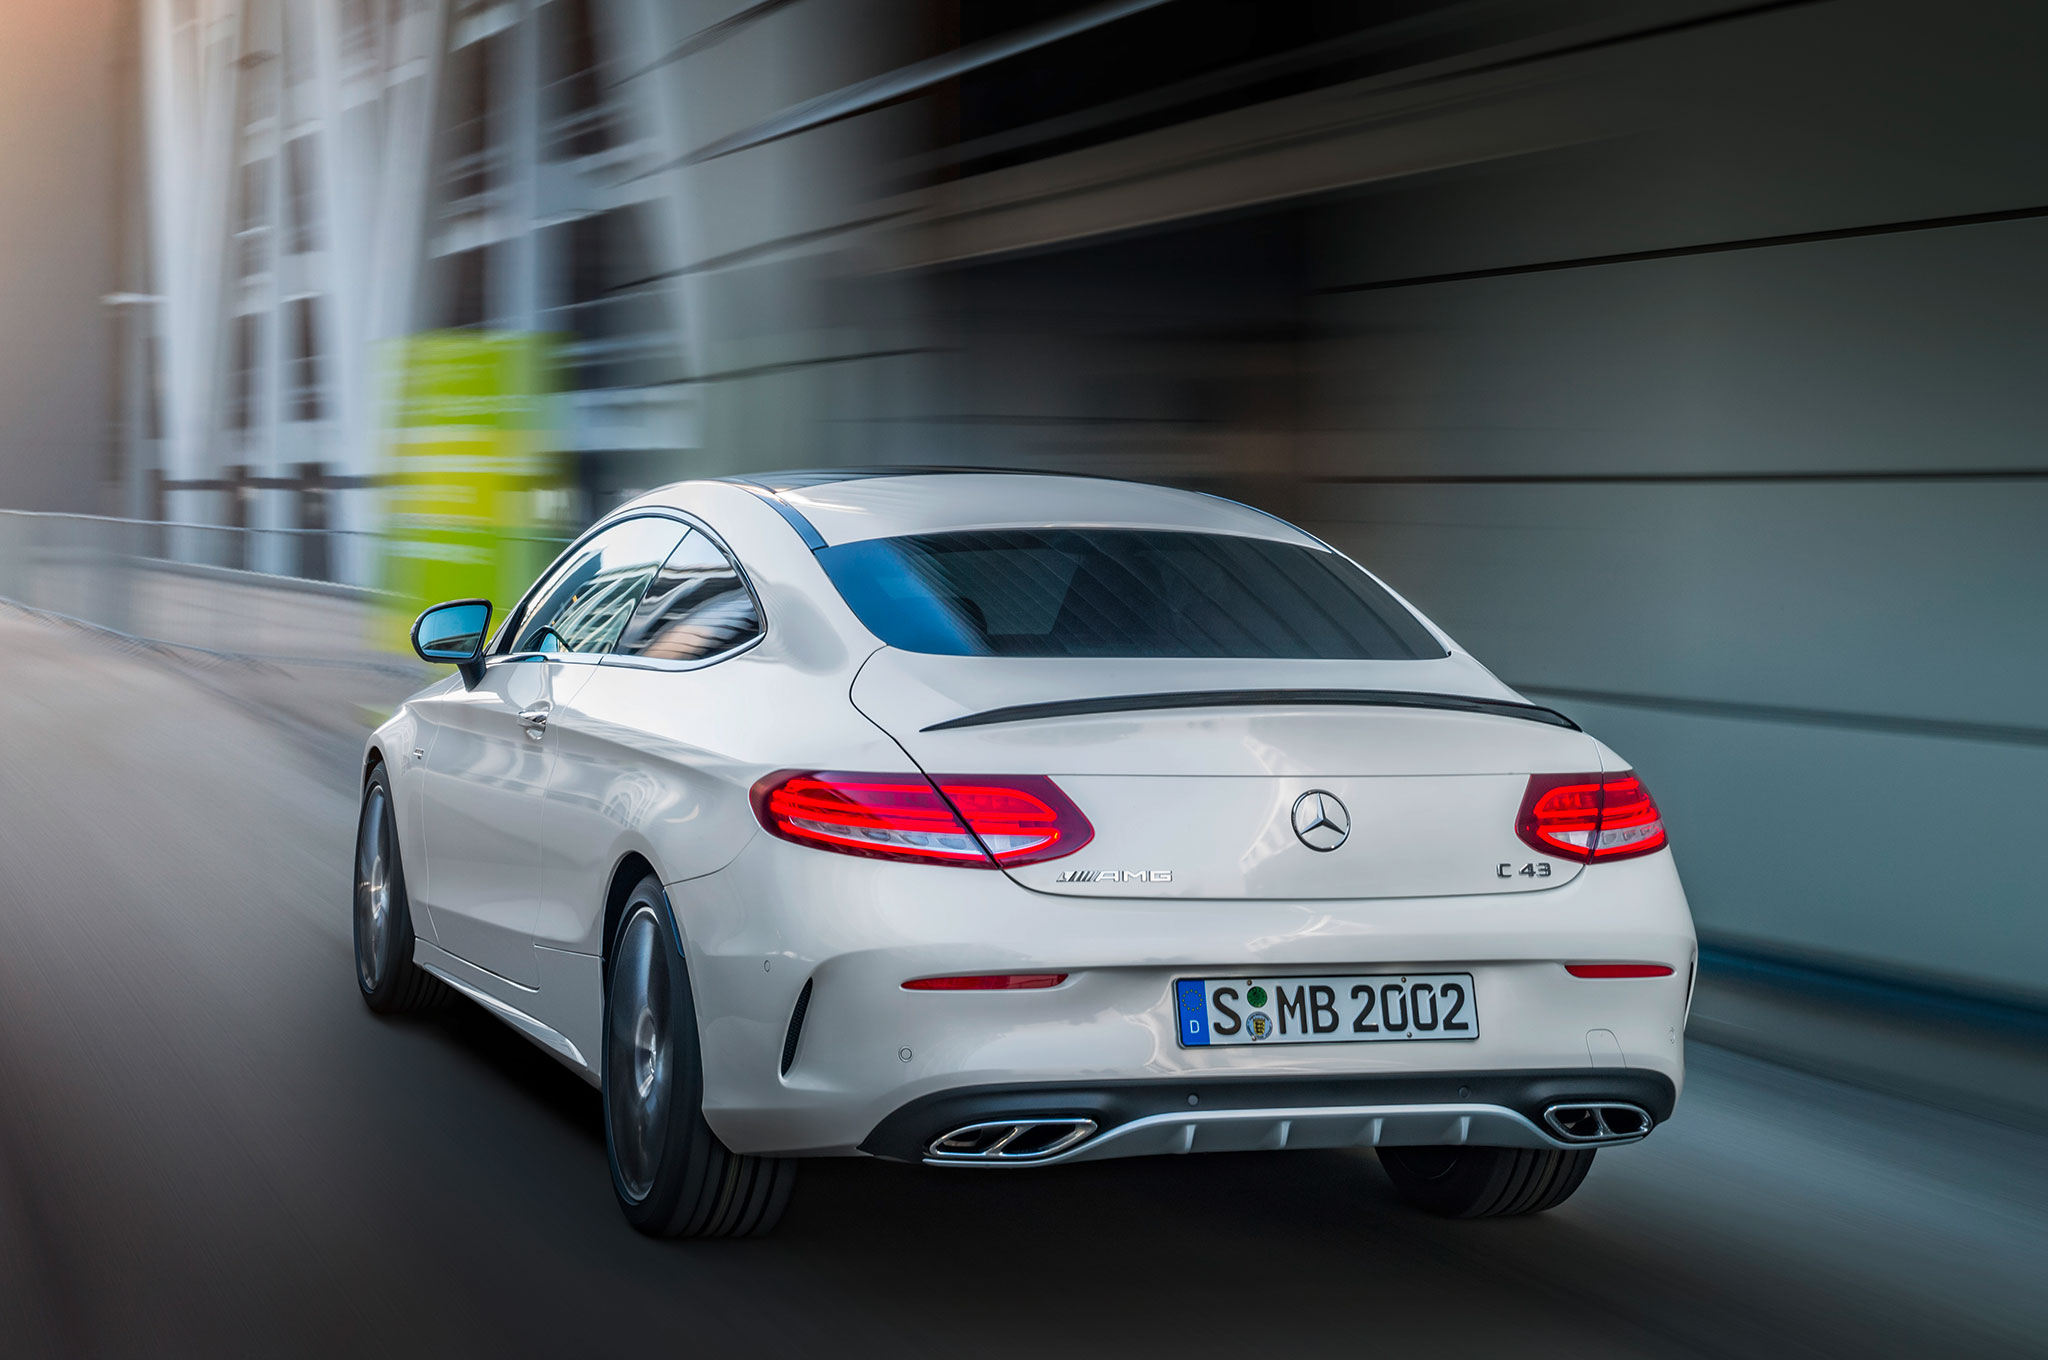 https://st.automobilemag.com/uploads/sites/11/2016/02/2017-Mercedes-AMG-C43-Coupe-rear-three-quarter-in-motion-02.jpg